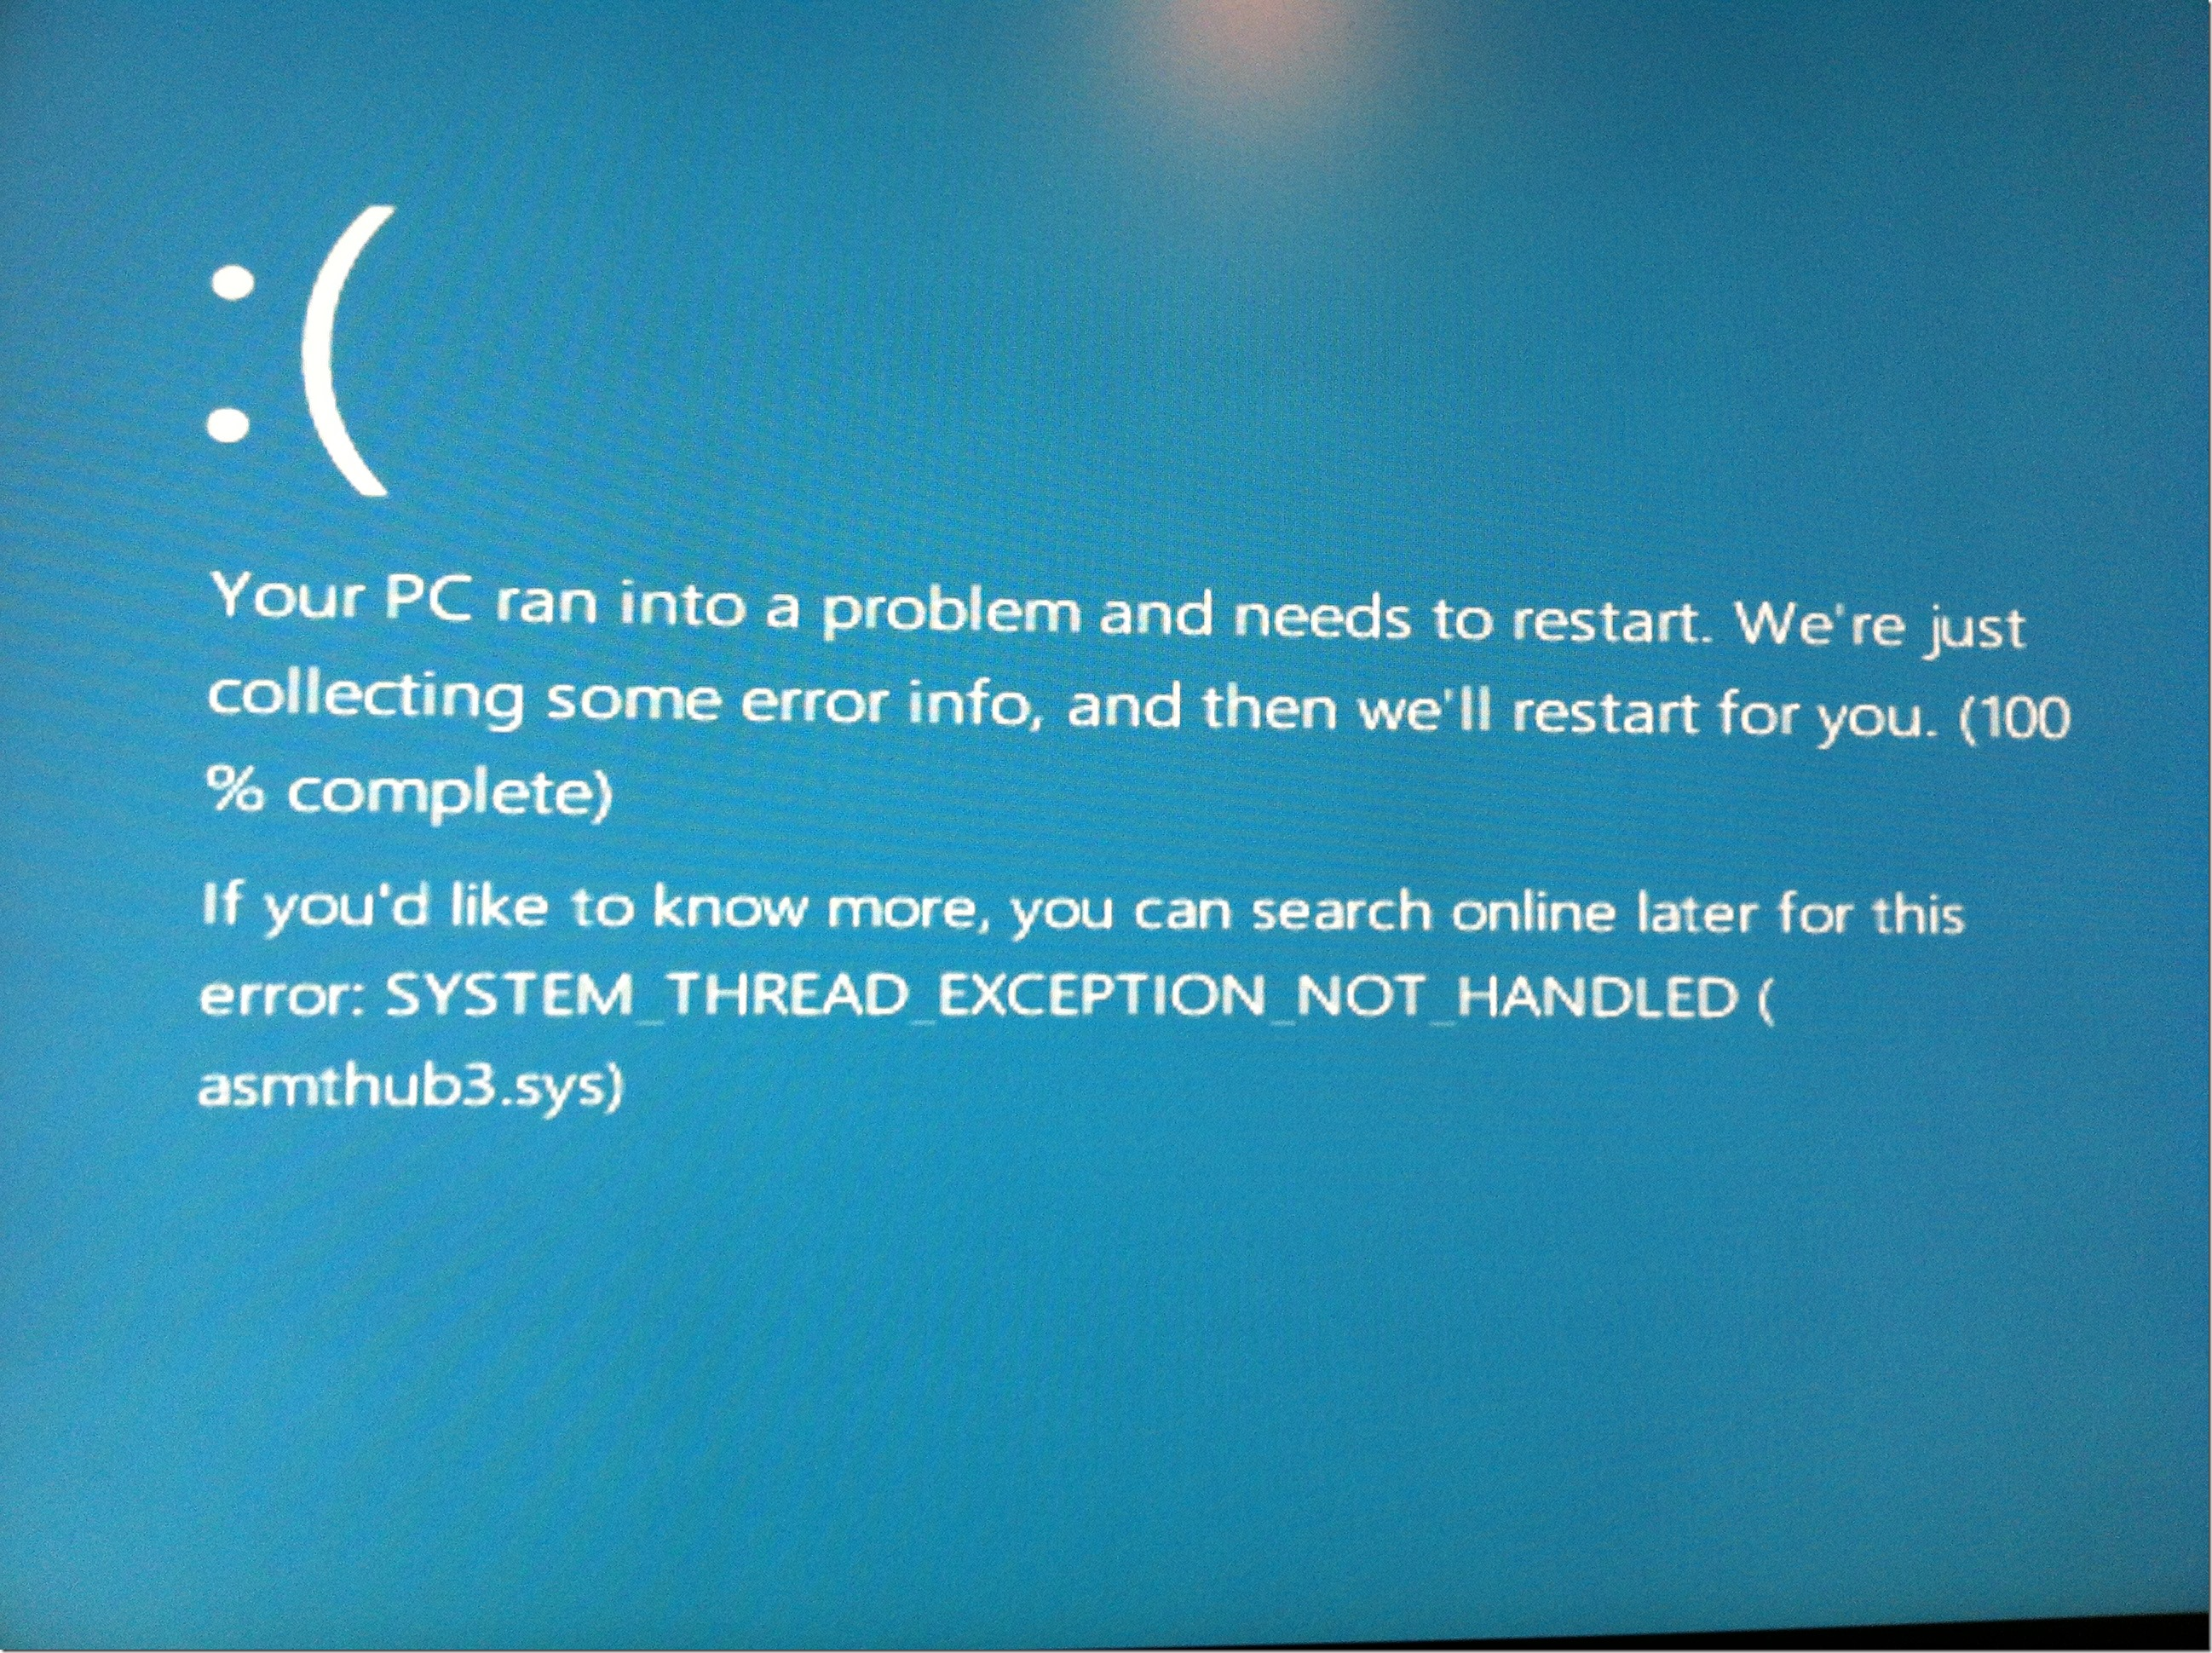 Blue Screen Crash - asmthub3.sys